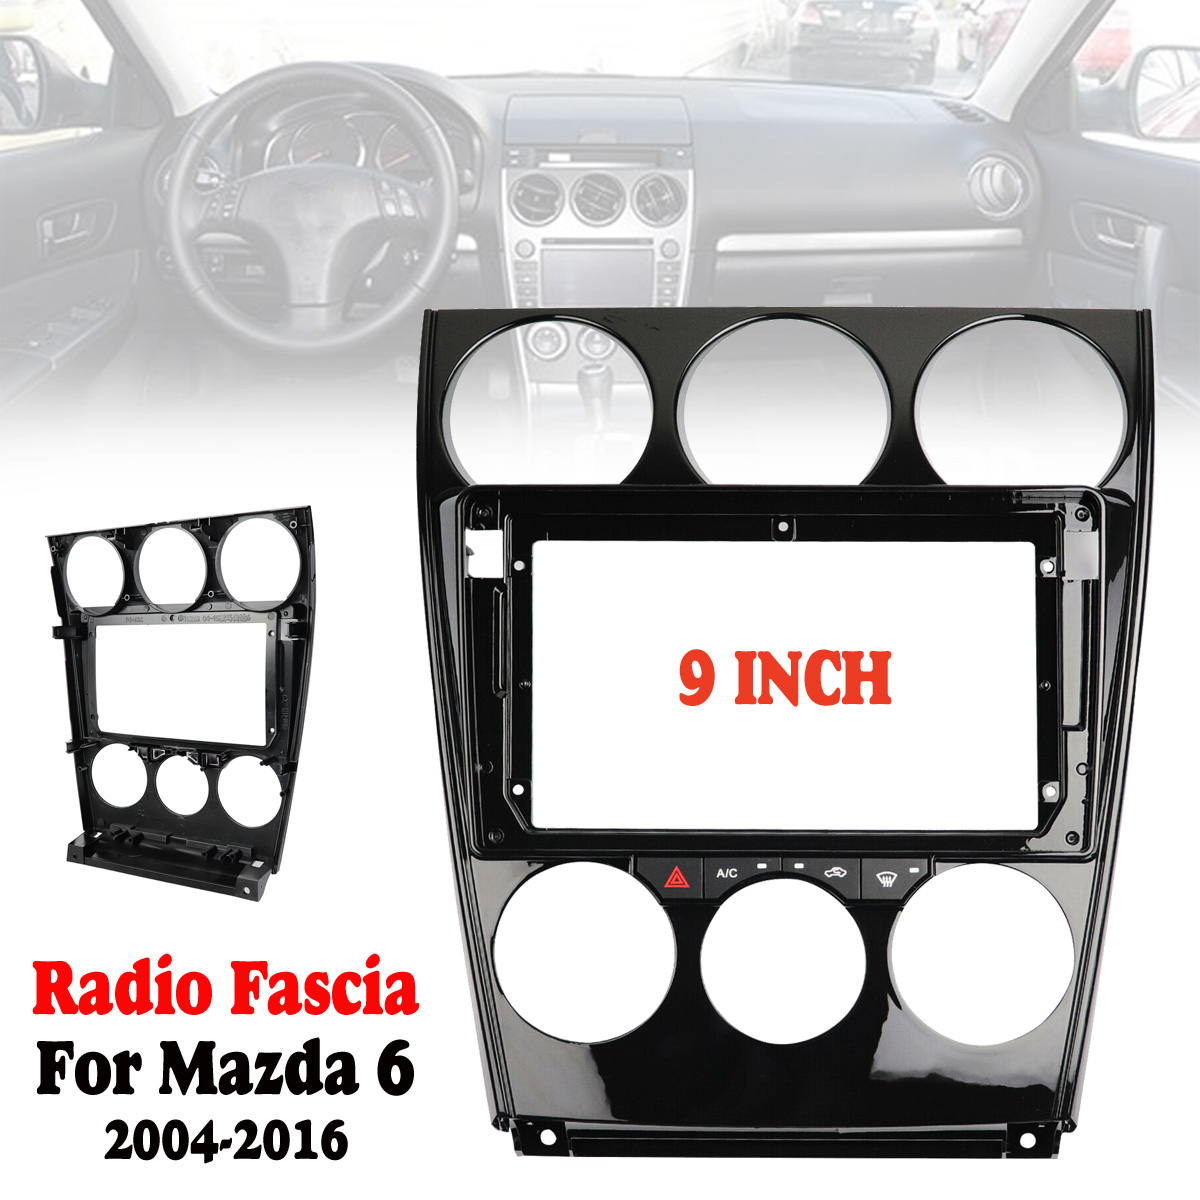 9 inch Car <font><b>Radio</b></font> Fascia For <font><b>Mazda</b></font> <font><b>6</b></font> 2004-2016 Dashboard Panel DVD Frame Bezel <font><b>Dash</b></font> Installation Trim <font><b>Kit</b></font> image